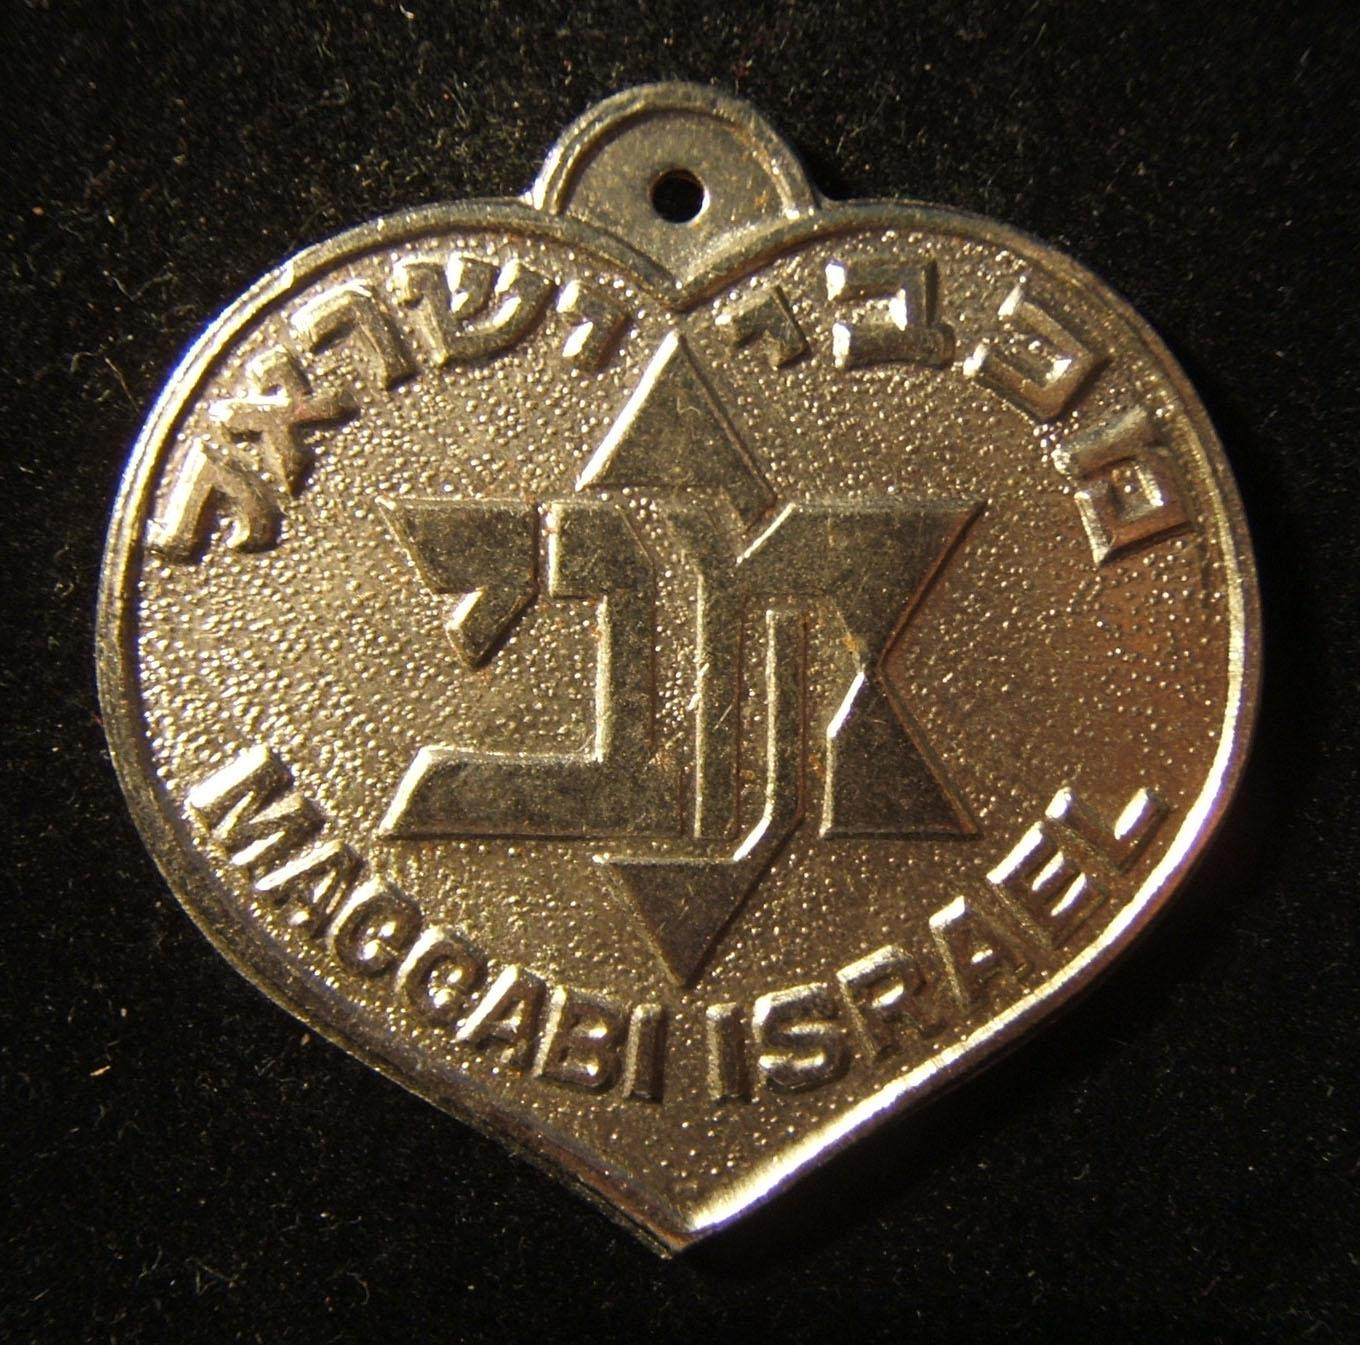 Maccabi 'Zichron Yaakov March' iron participation medal, 1987-88